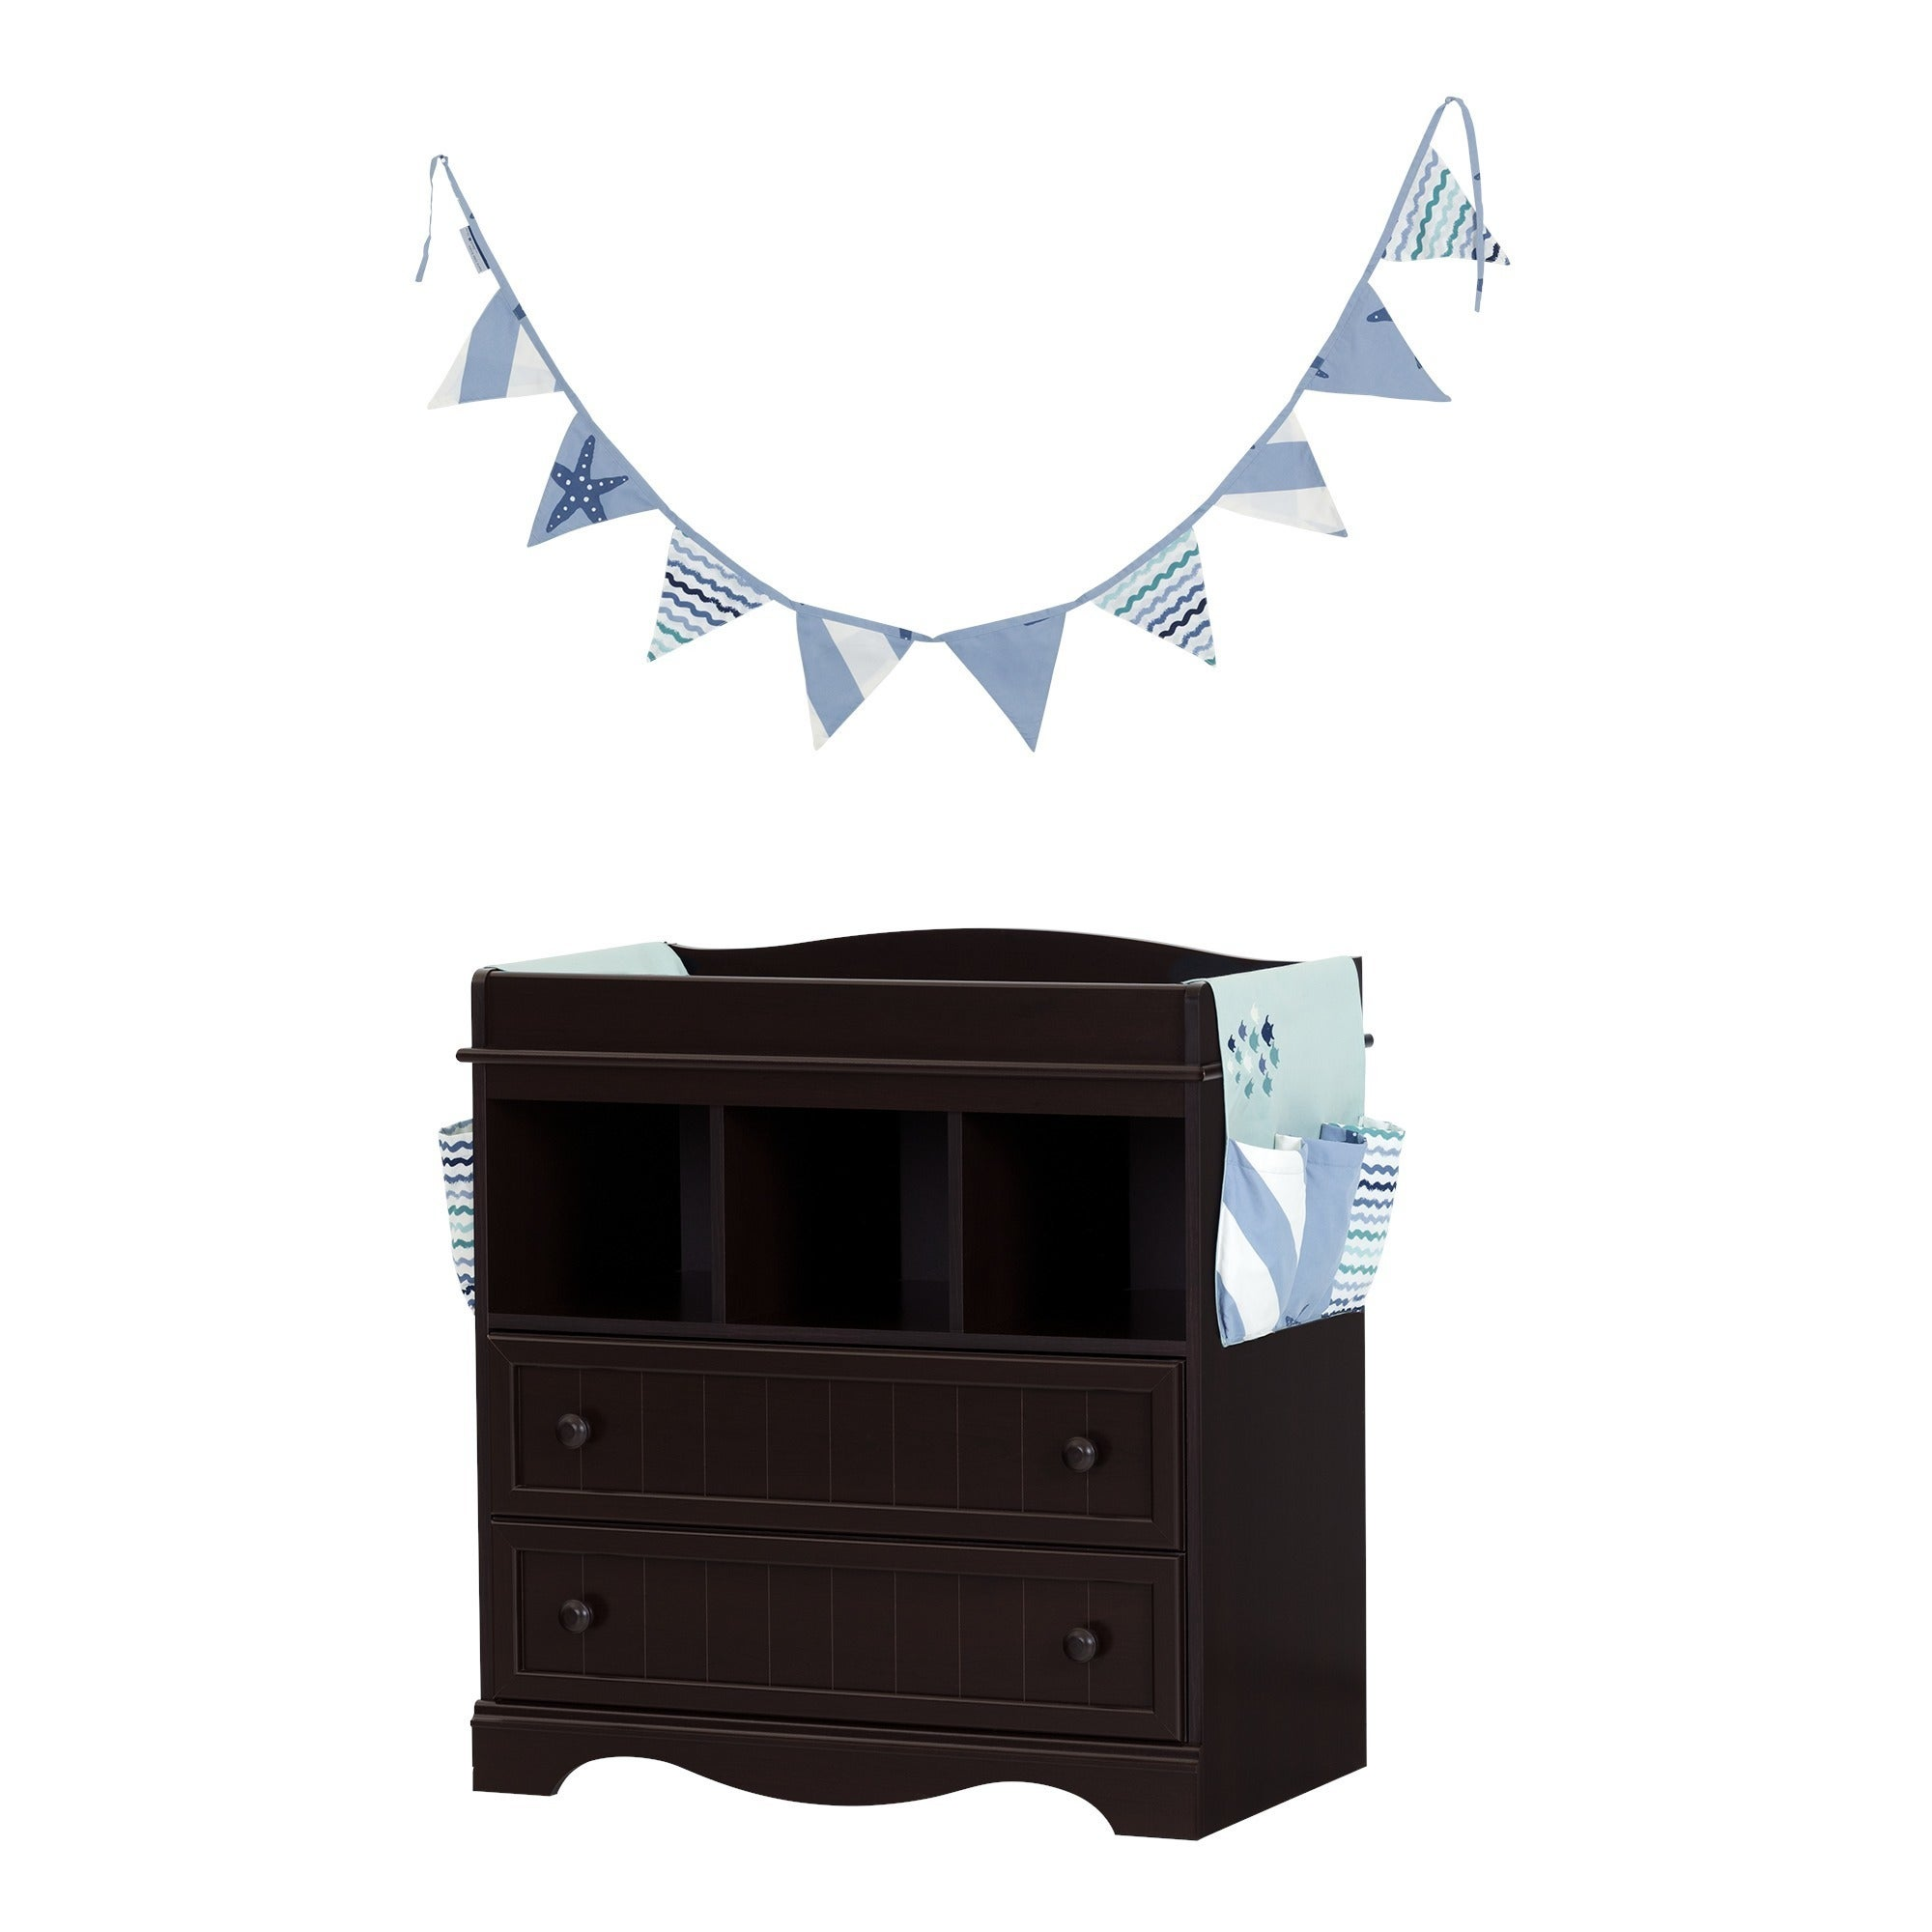 South Shore Savannah Espresso And Blue Changing Table With Little Whale  Runner And Pennant Banner   Free Shipping Today   Overstock   22729524